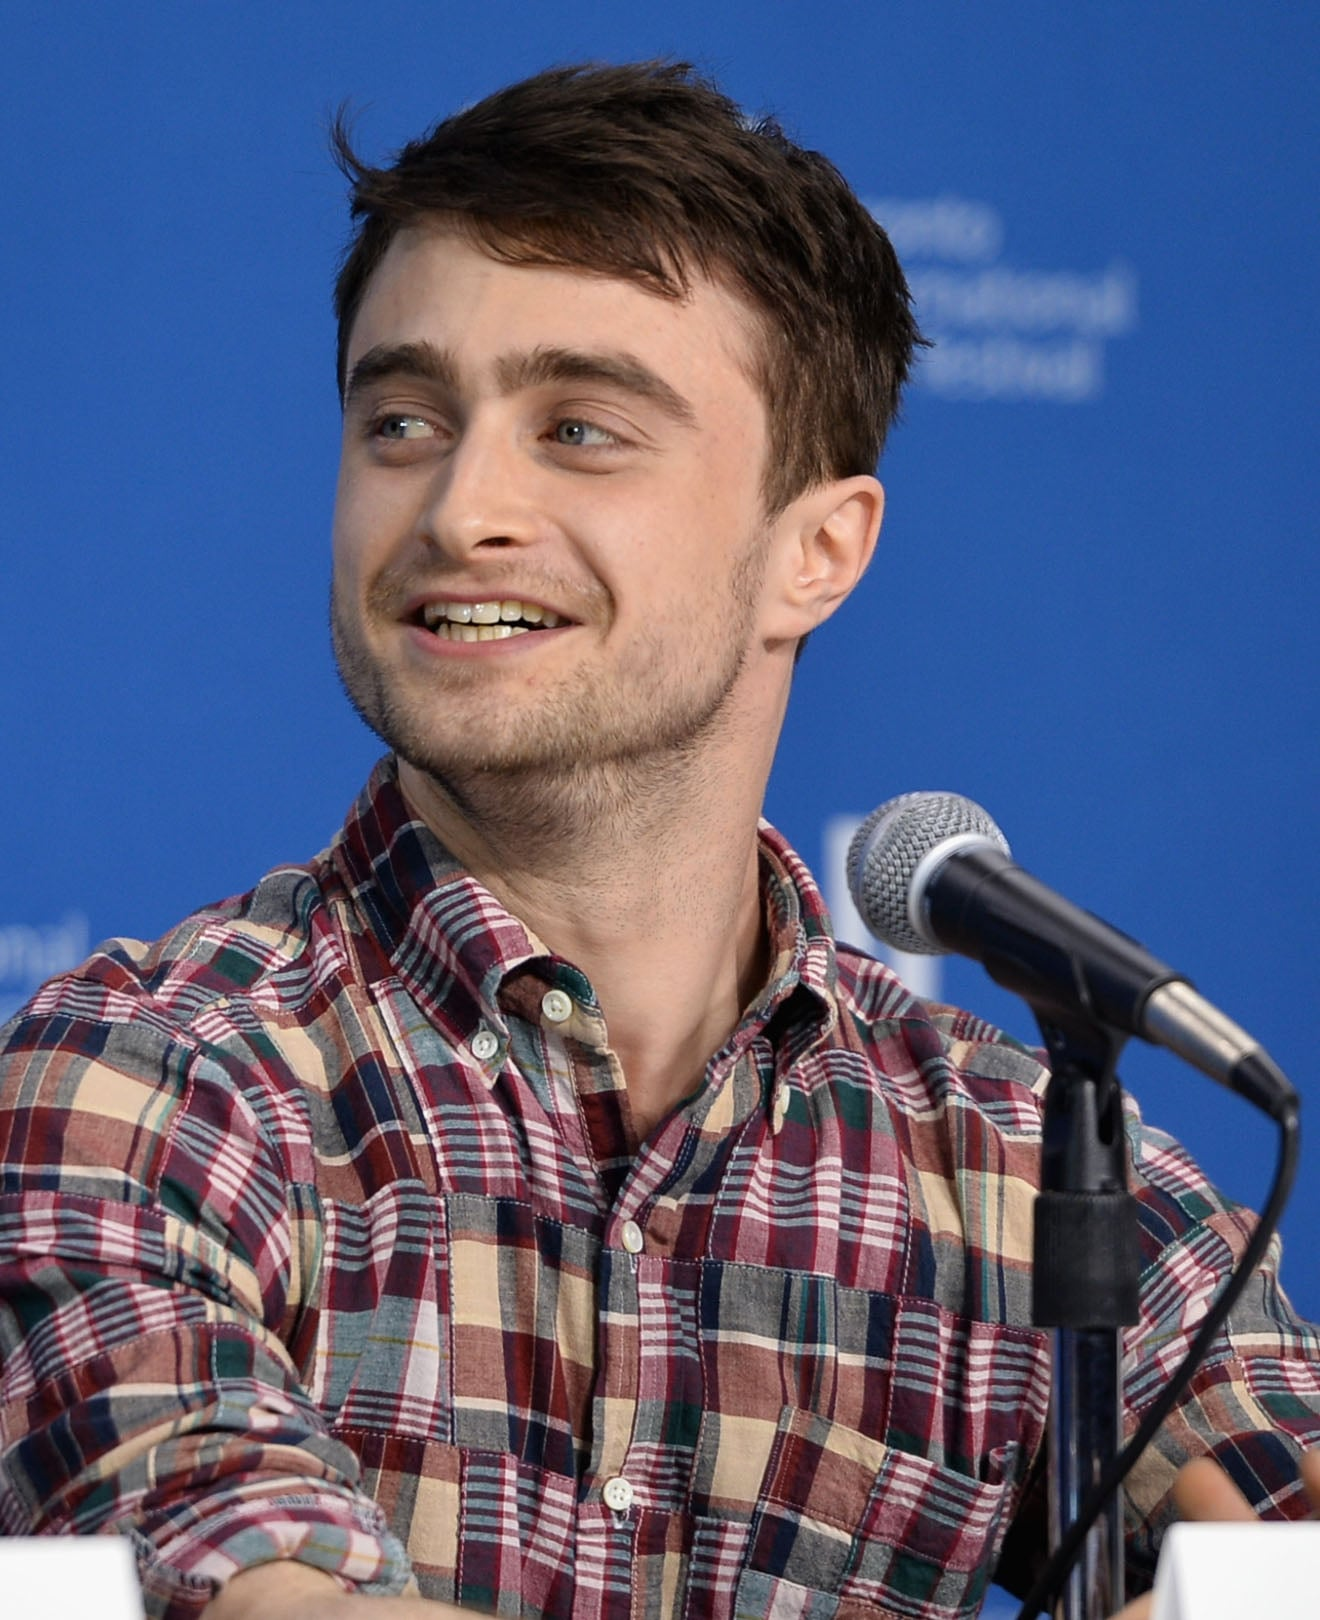 Daniel Radcliffe attended a press conference for The F Word.